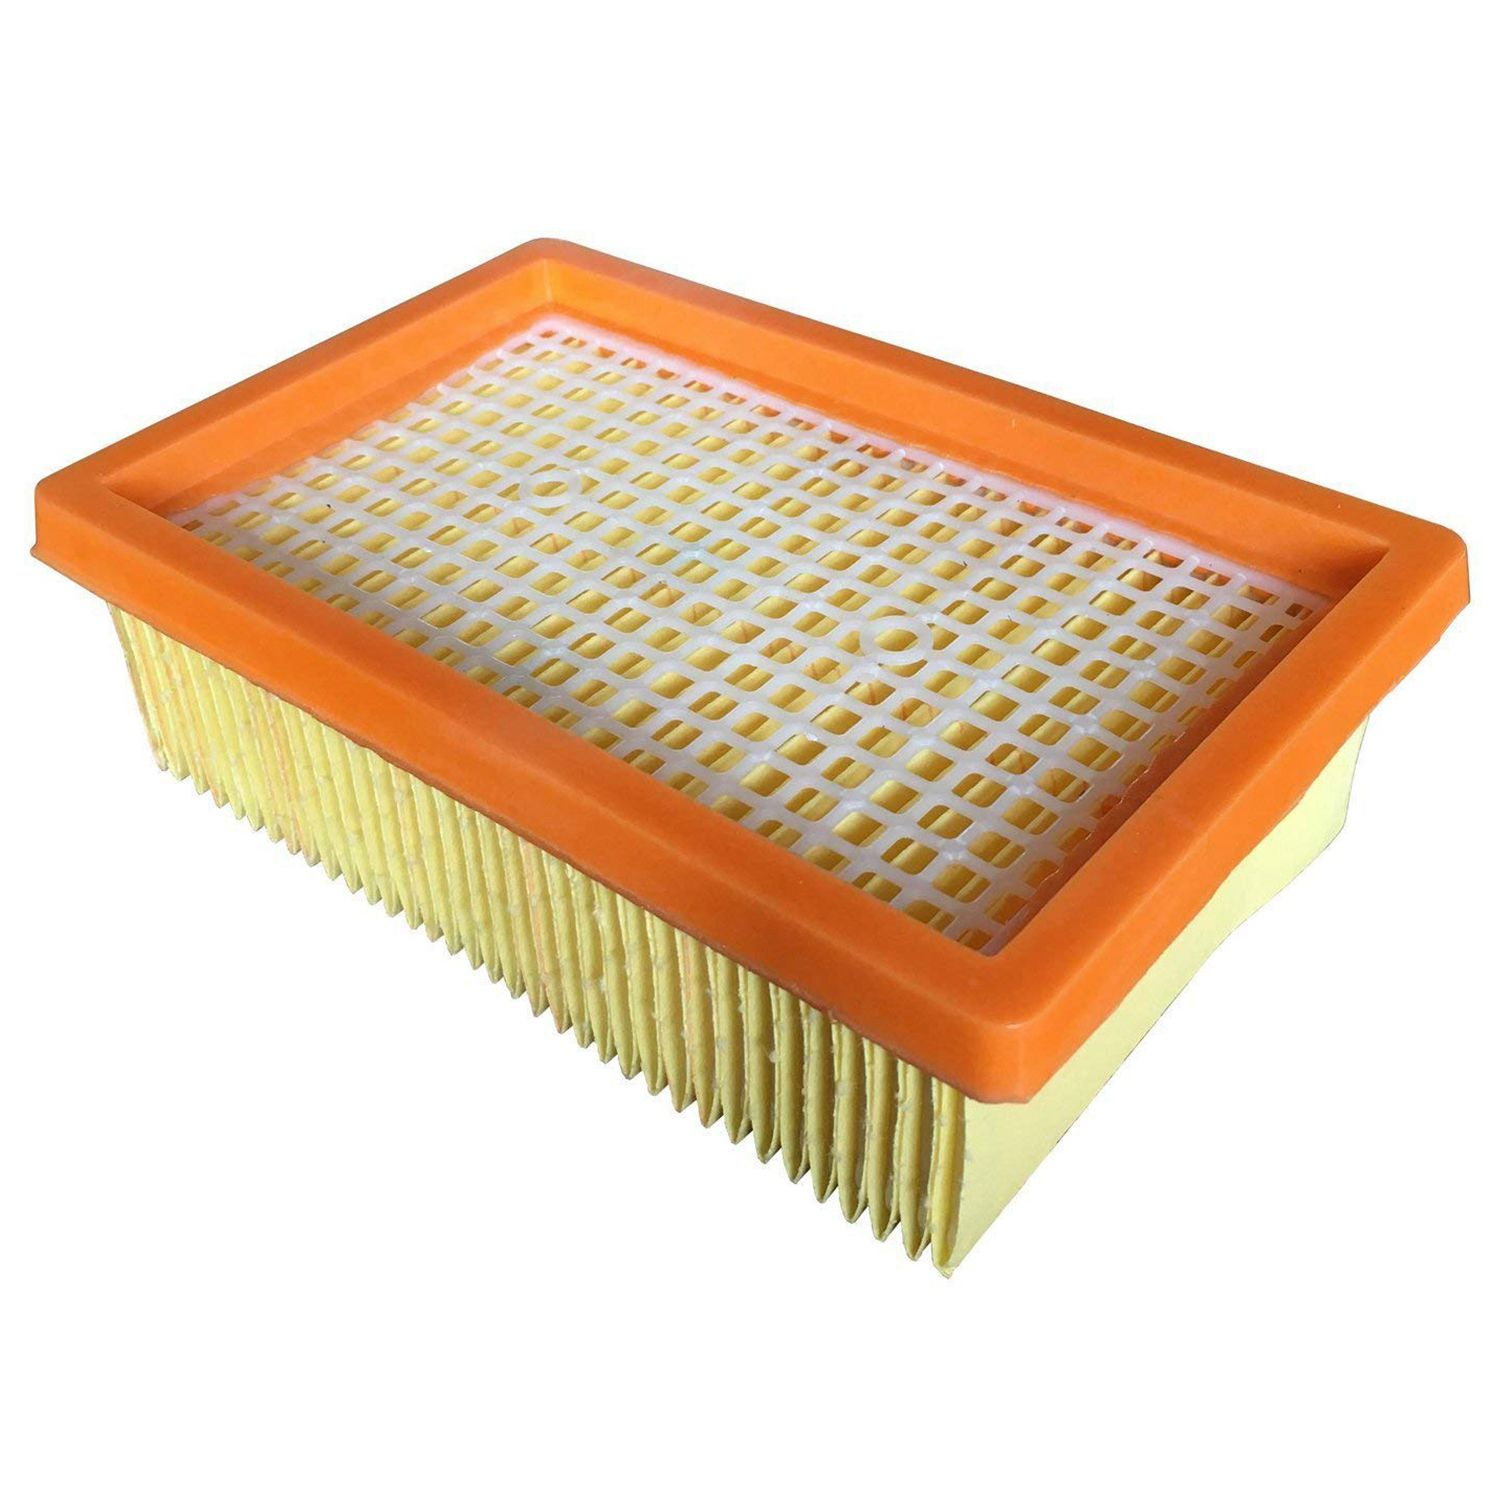 Hot Sale Vacuum Cleaner Hepa Filter Replacement For KARCHER Flat-Pleated MV4 MV5 MV6 WD4 WD5 WD6 P PREMIUM WD5 цена